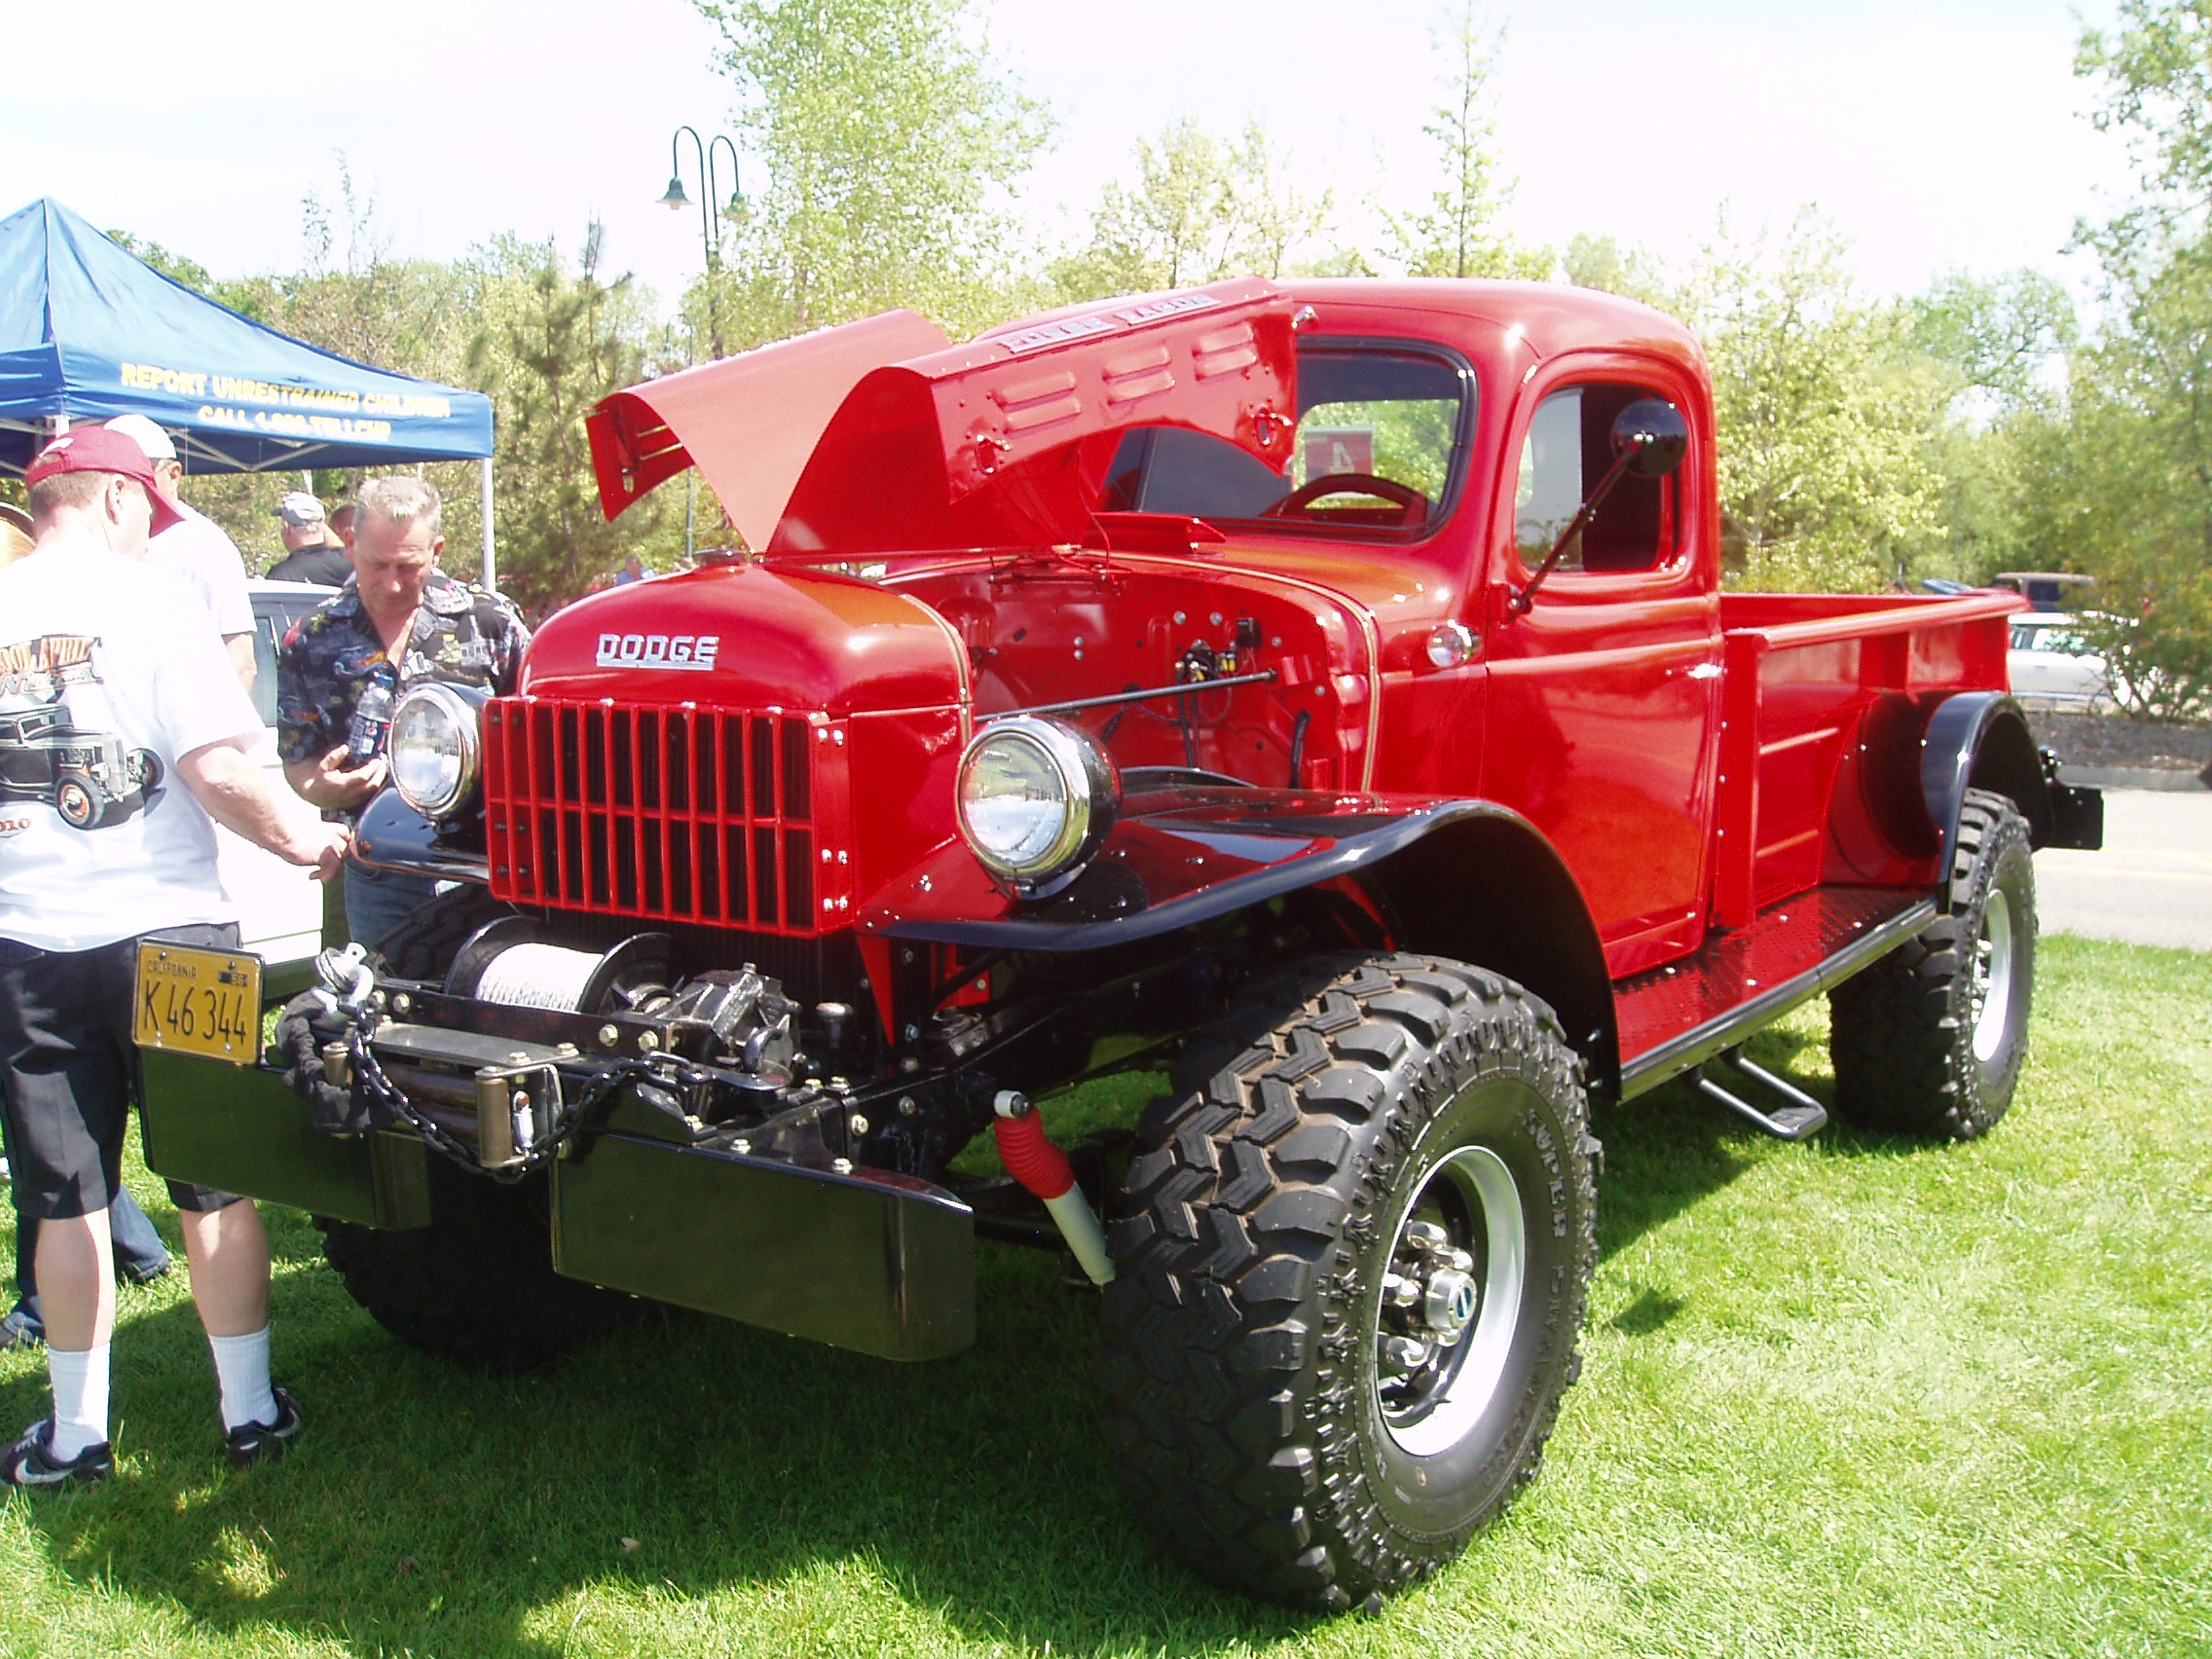 Dodge Power Wagon Simple English Wikipedia The Free Encyclopedia